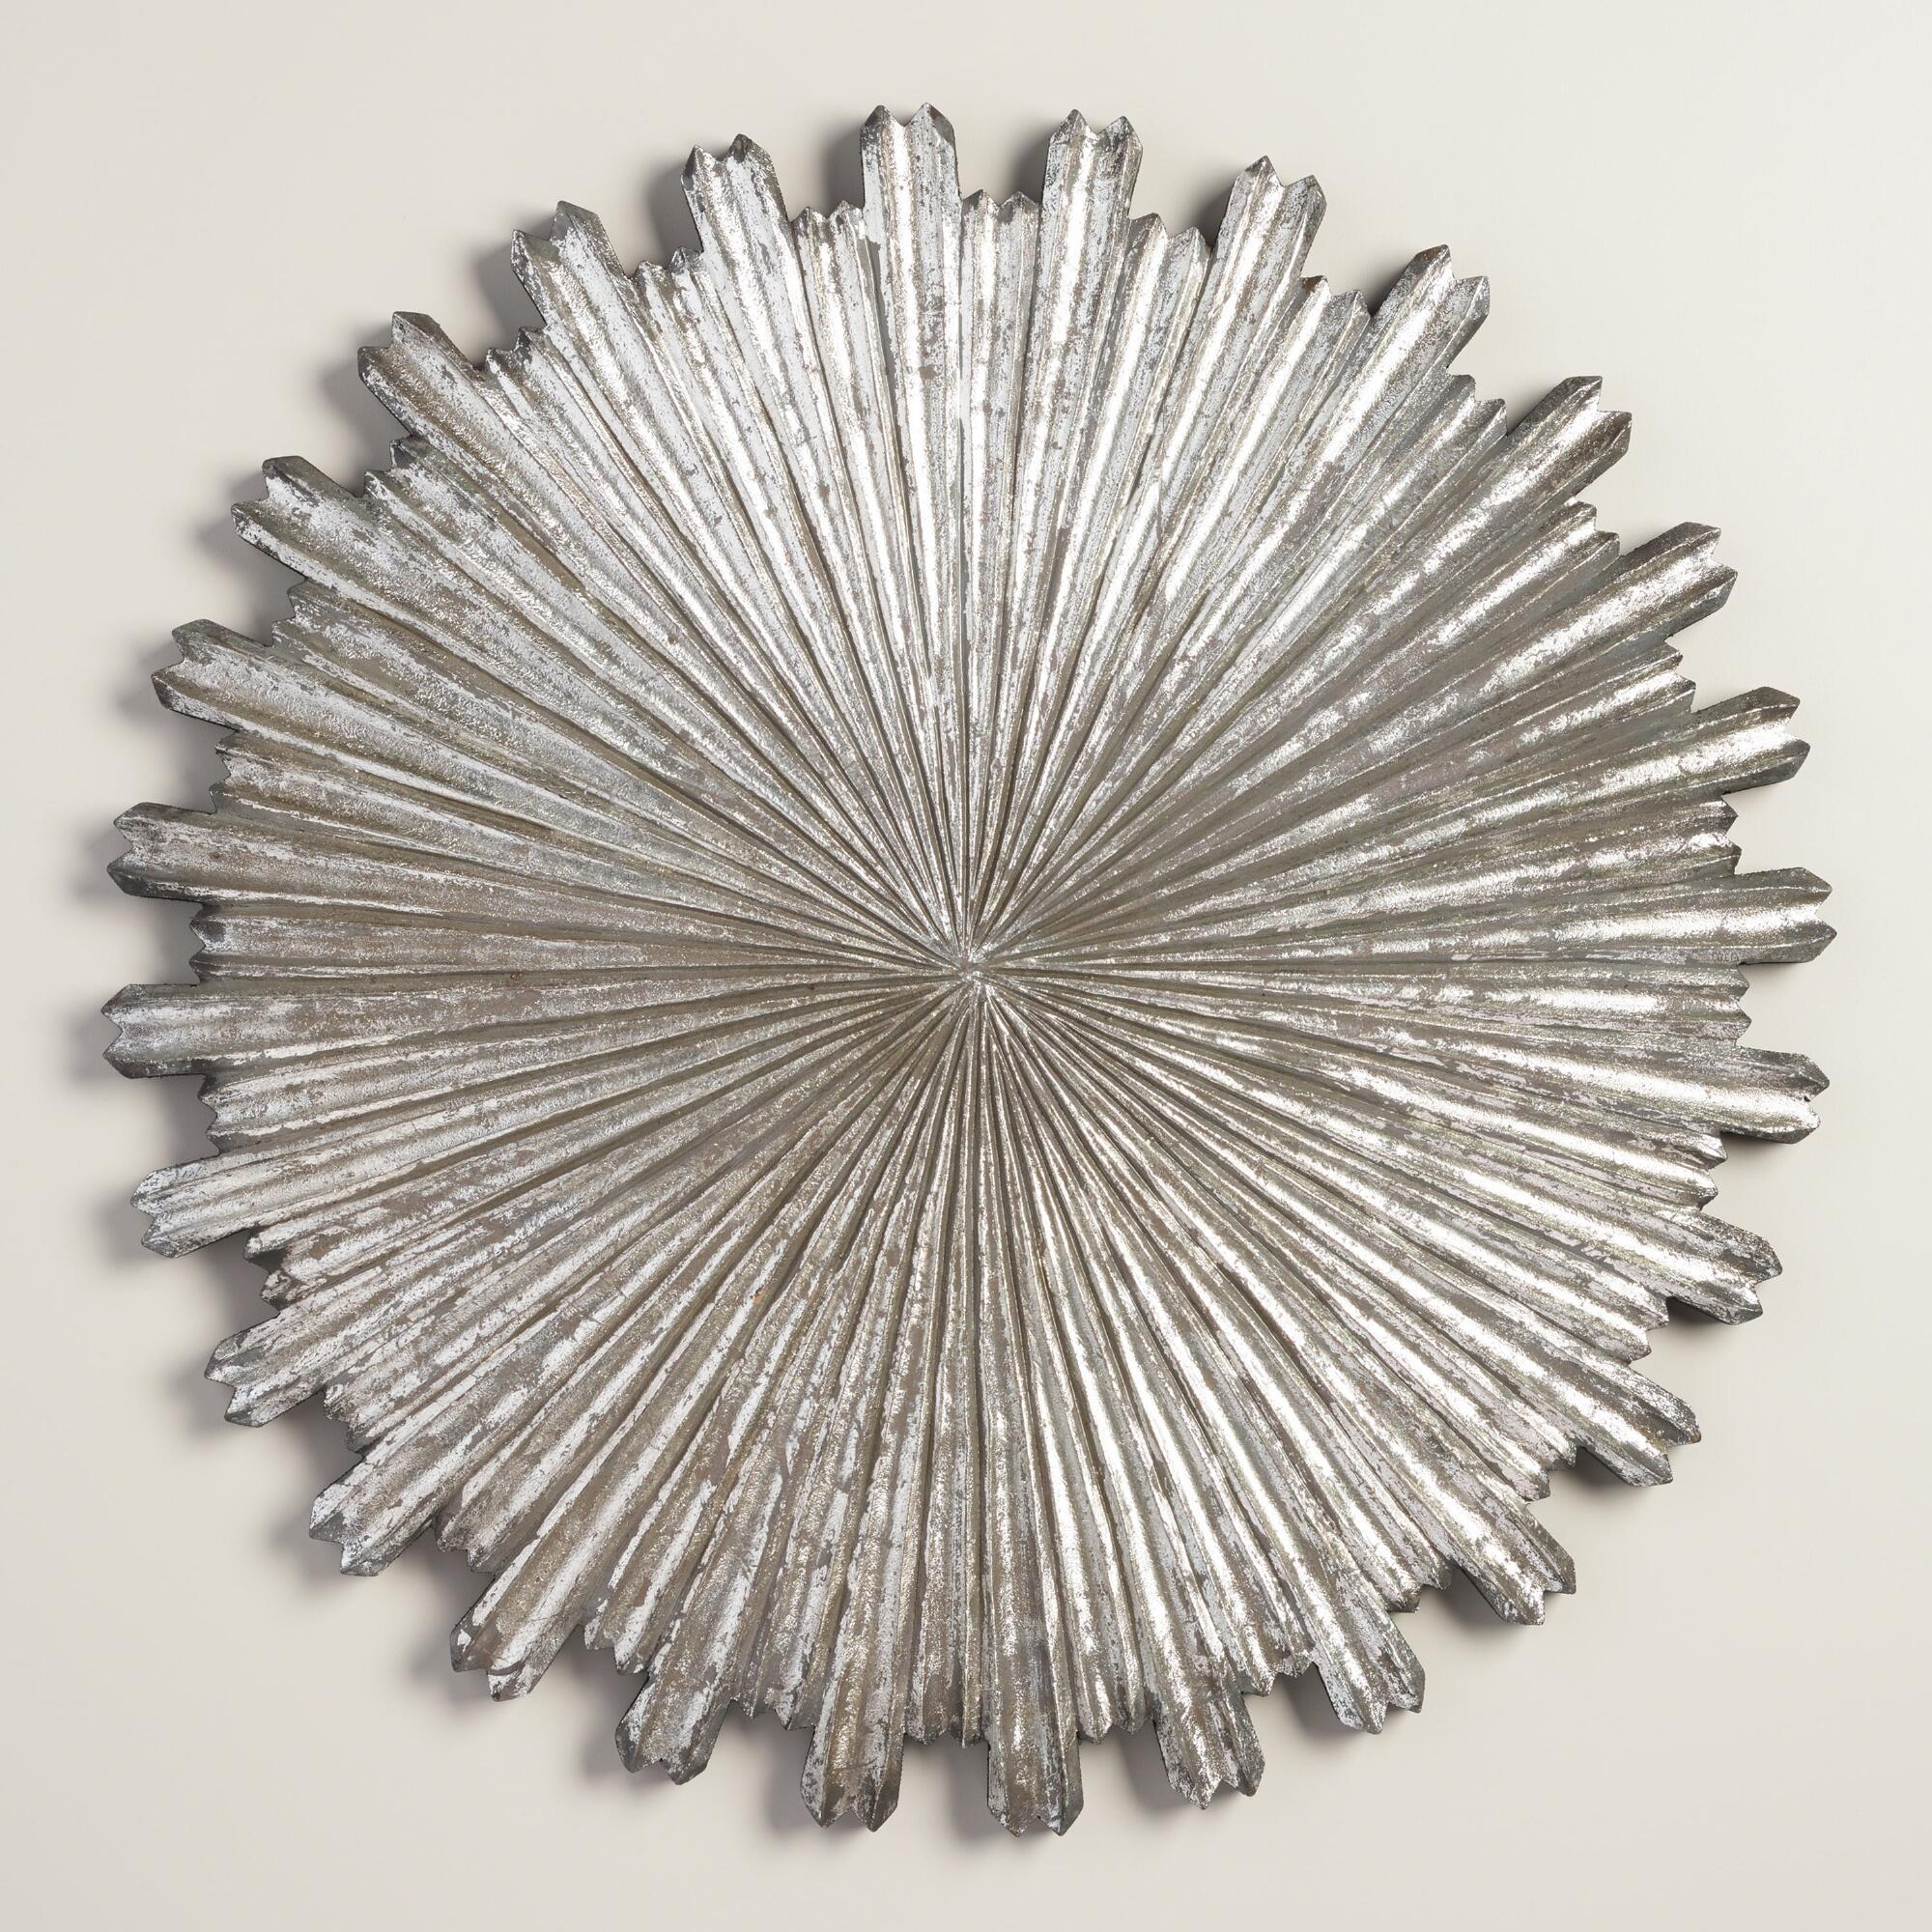 Wall Art Designs: Sunburst Wall Art Silver Wall Decor On Metal With Regard To Silver Starburst Wall Art (Image 15 of 20)